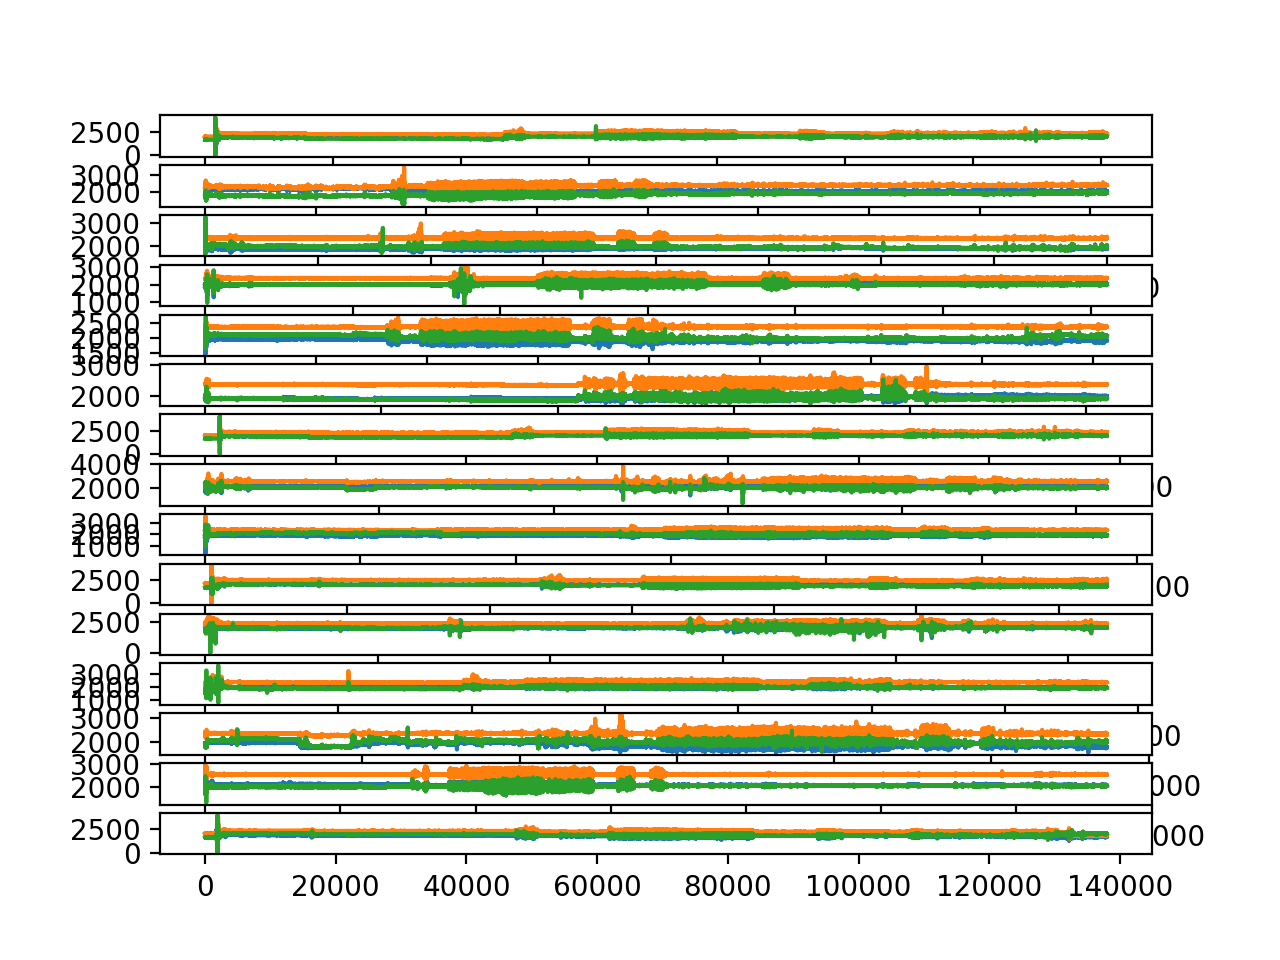 Line plots of accelerometer trace data for all 15 subjects.